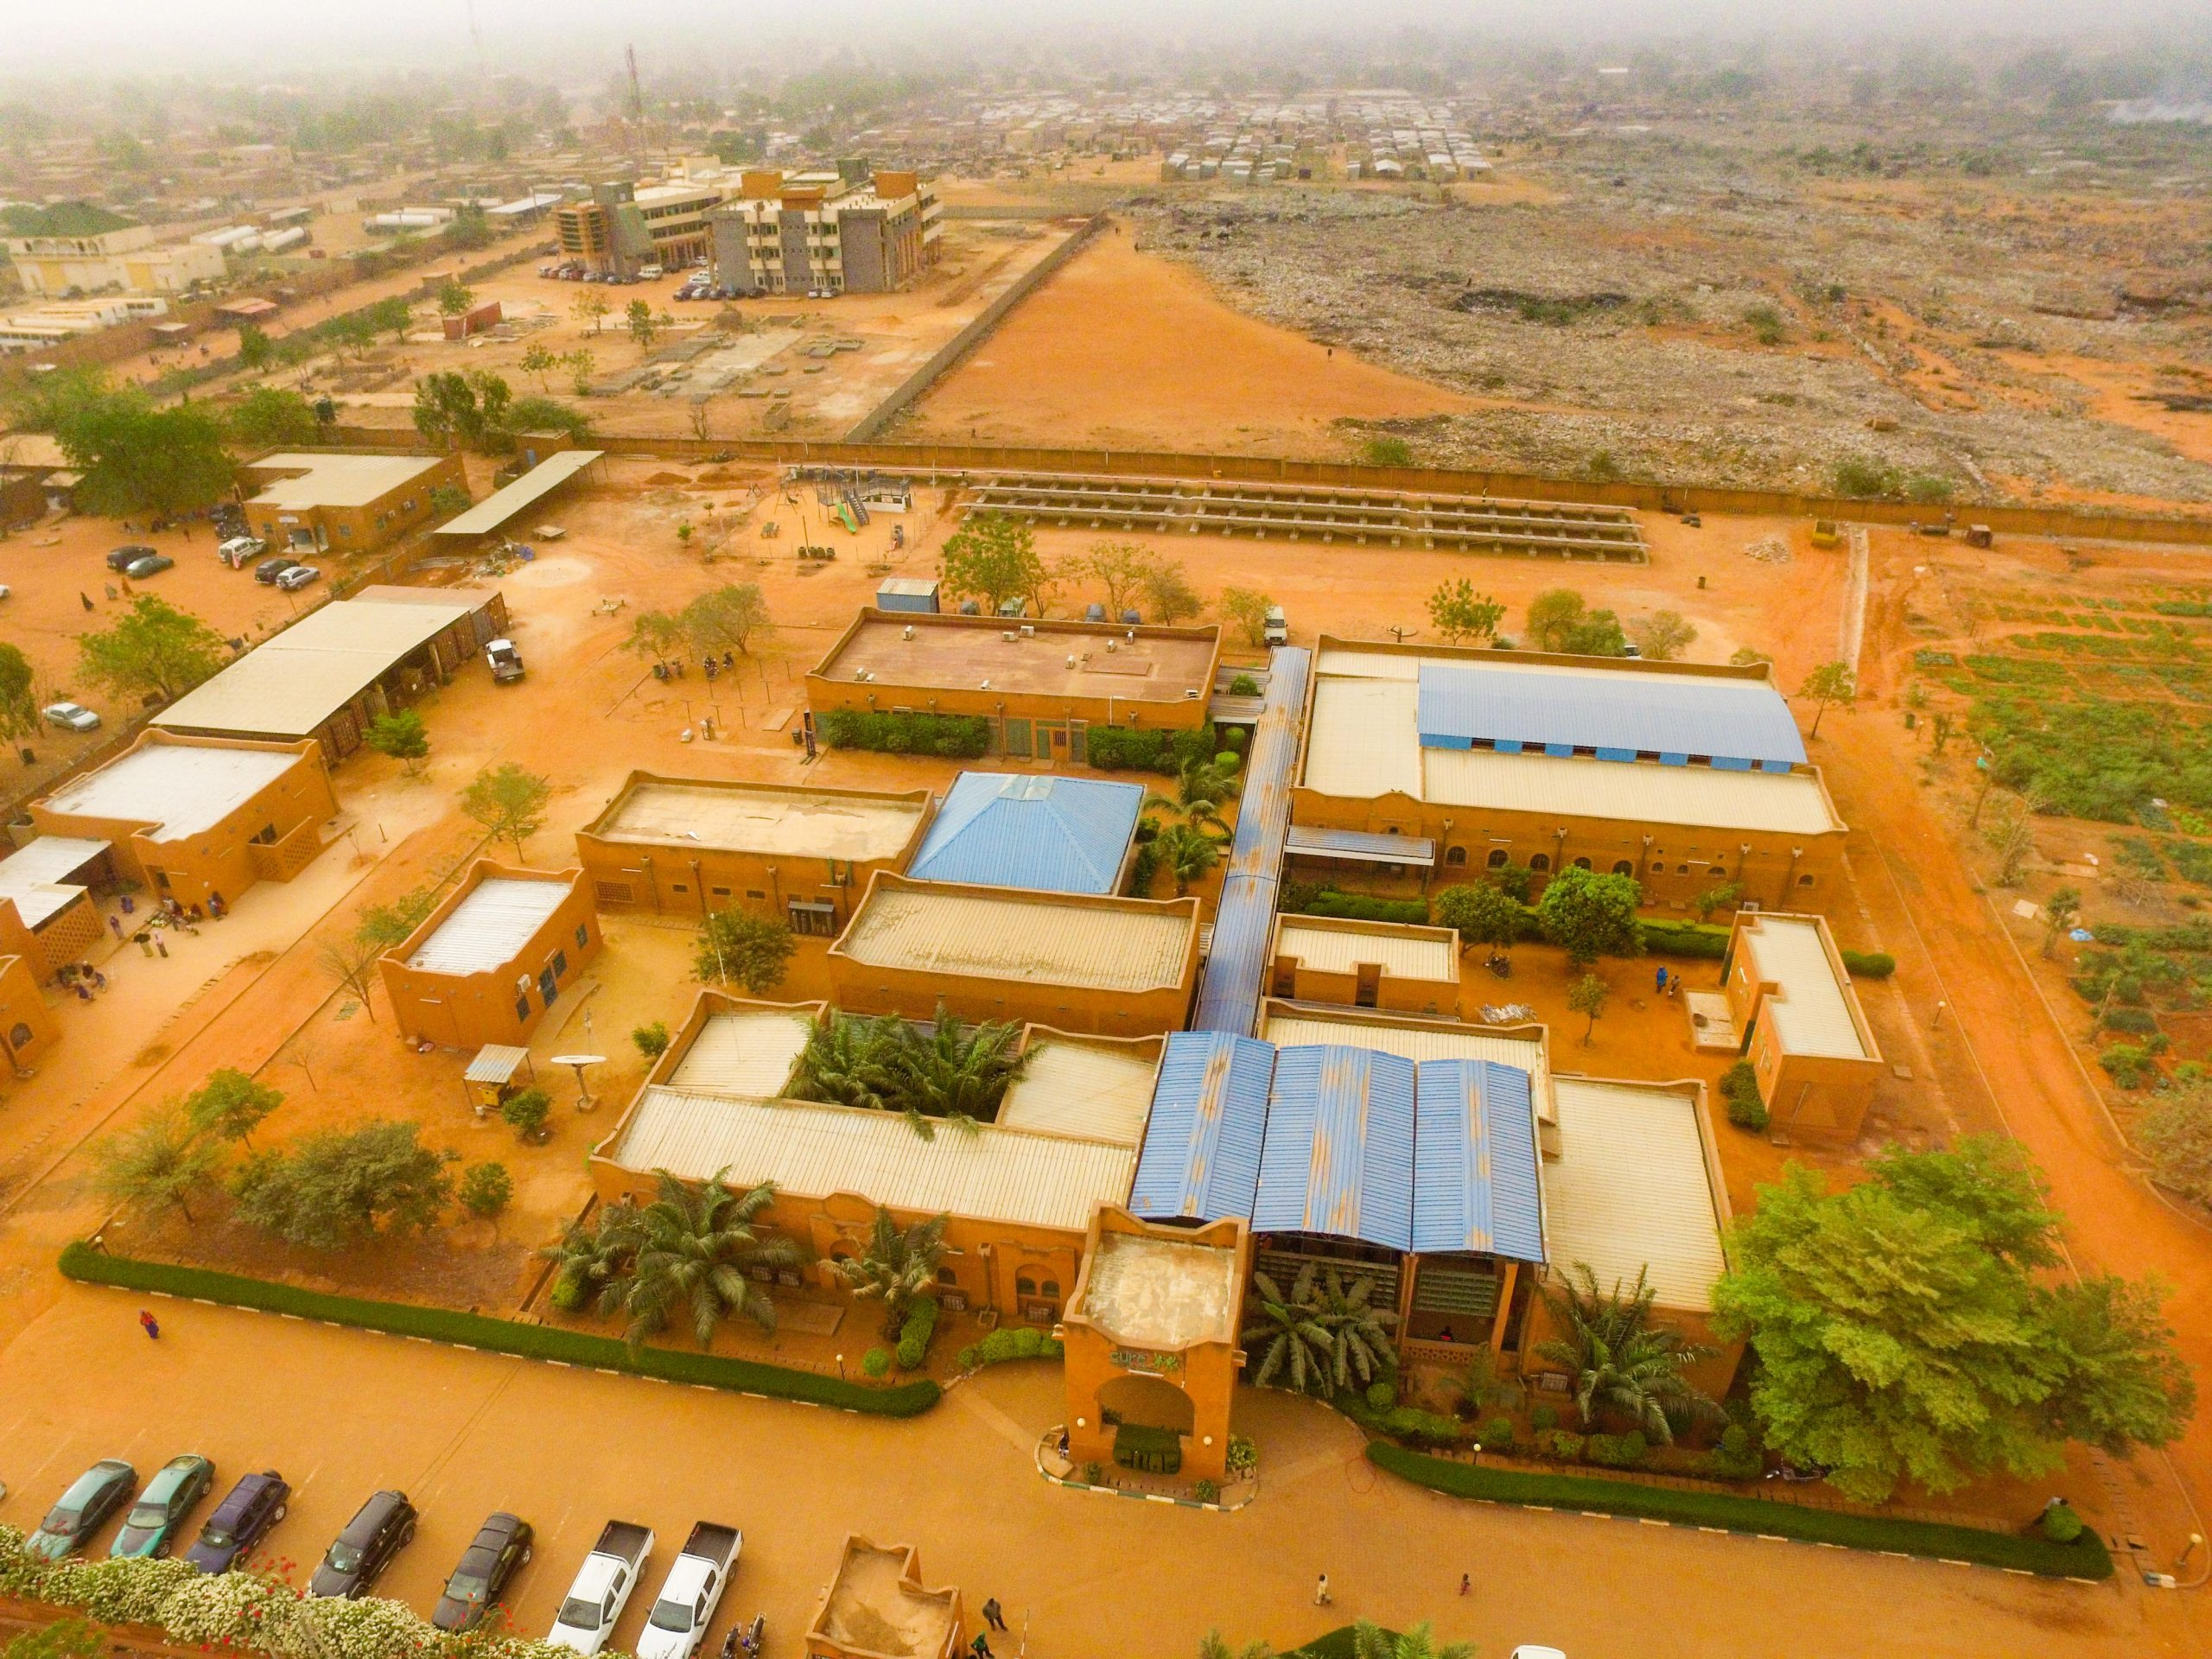 Arial view of hospital in Niger